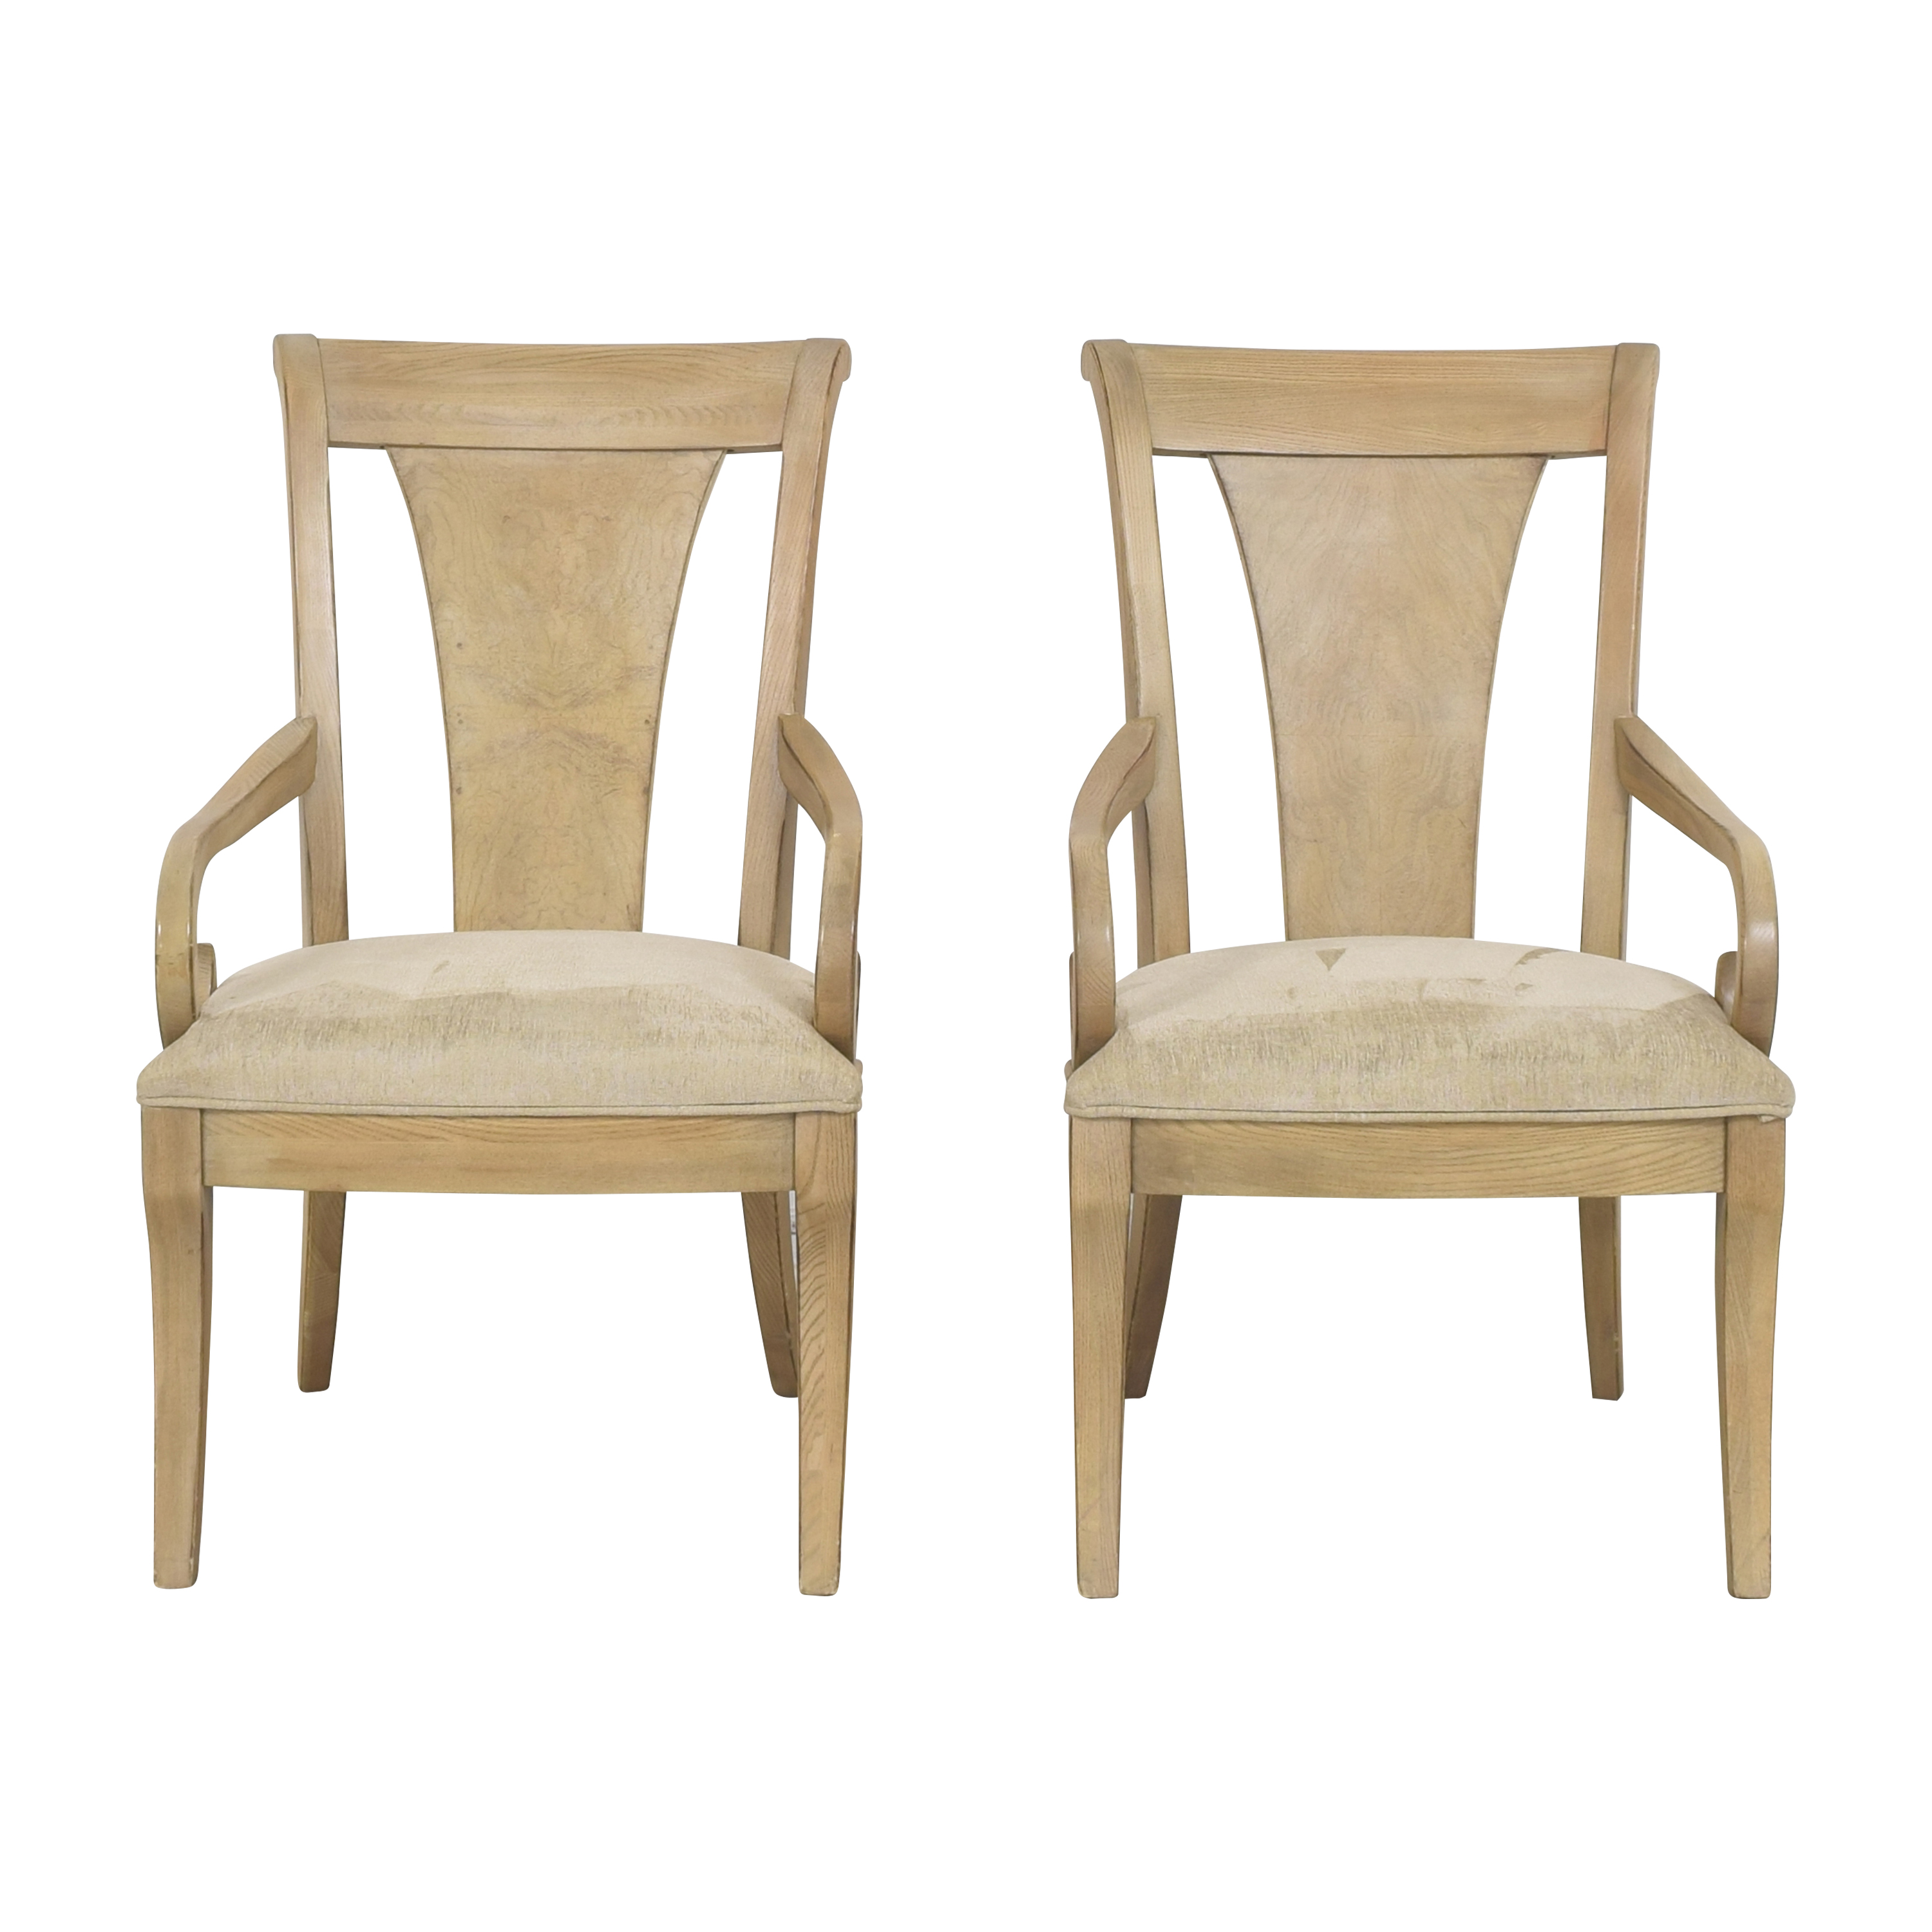 Drexel Heritage Drexel Heritage Dining Arm Chairs pa